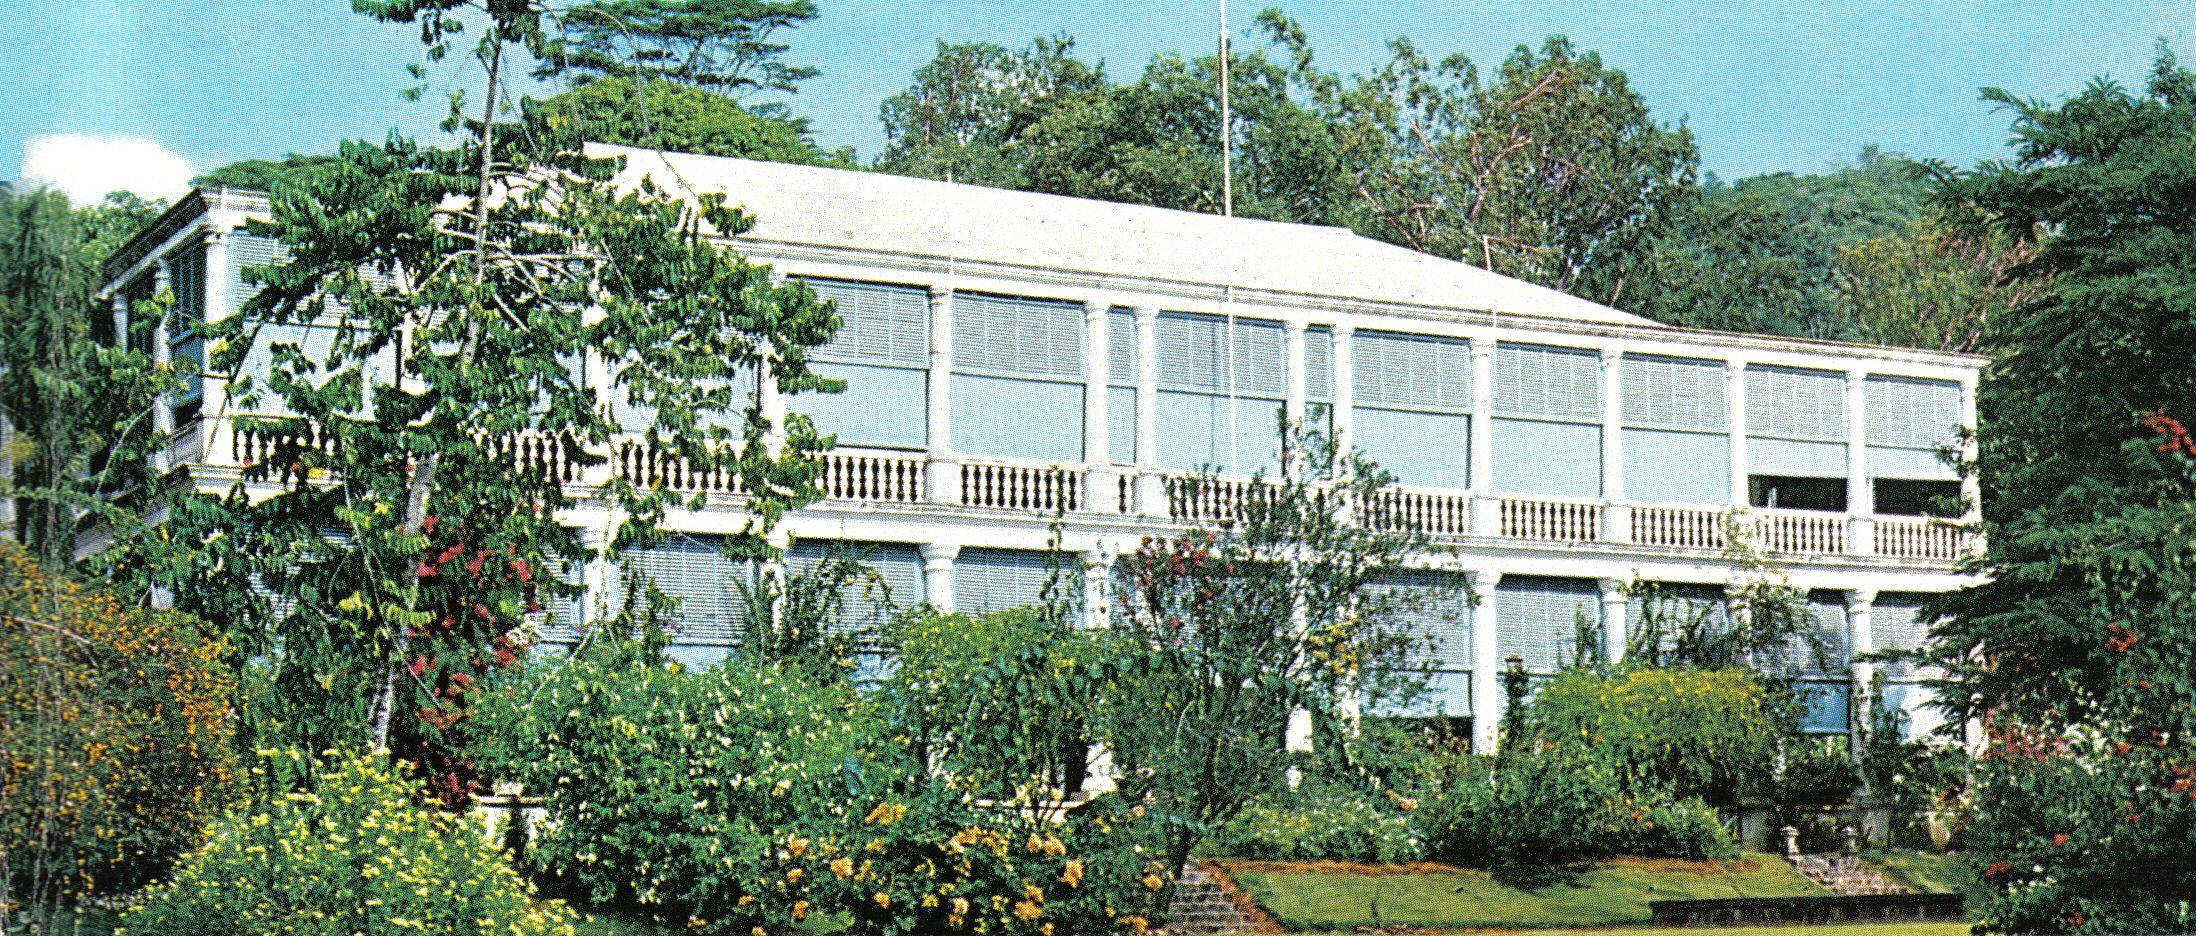 State-House-Victoria-Seychelles